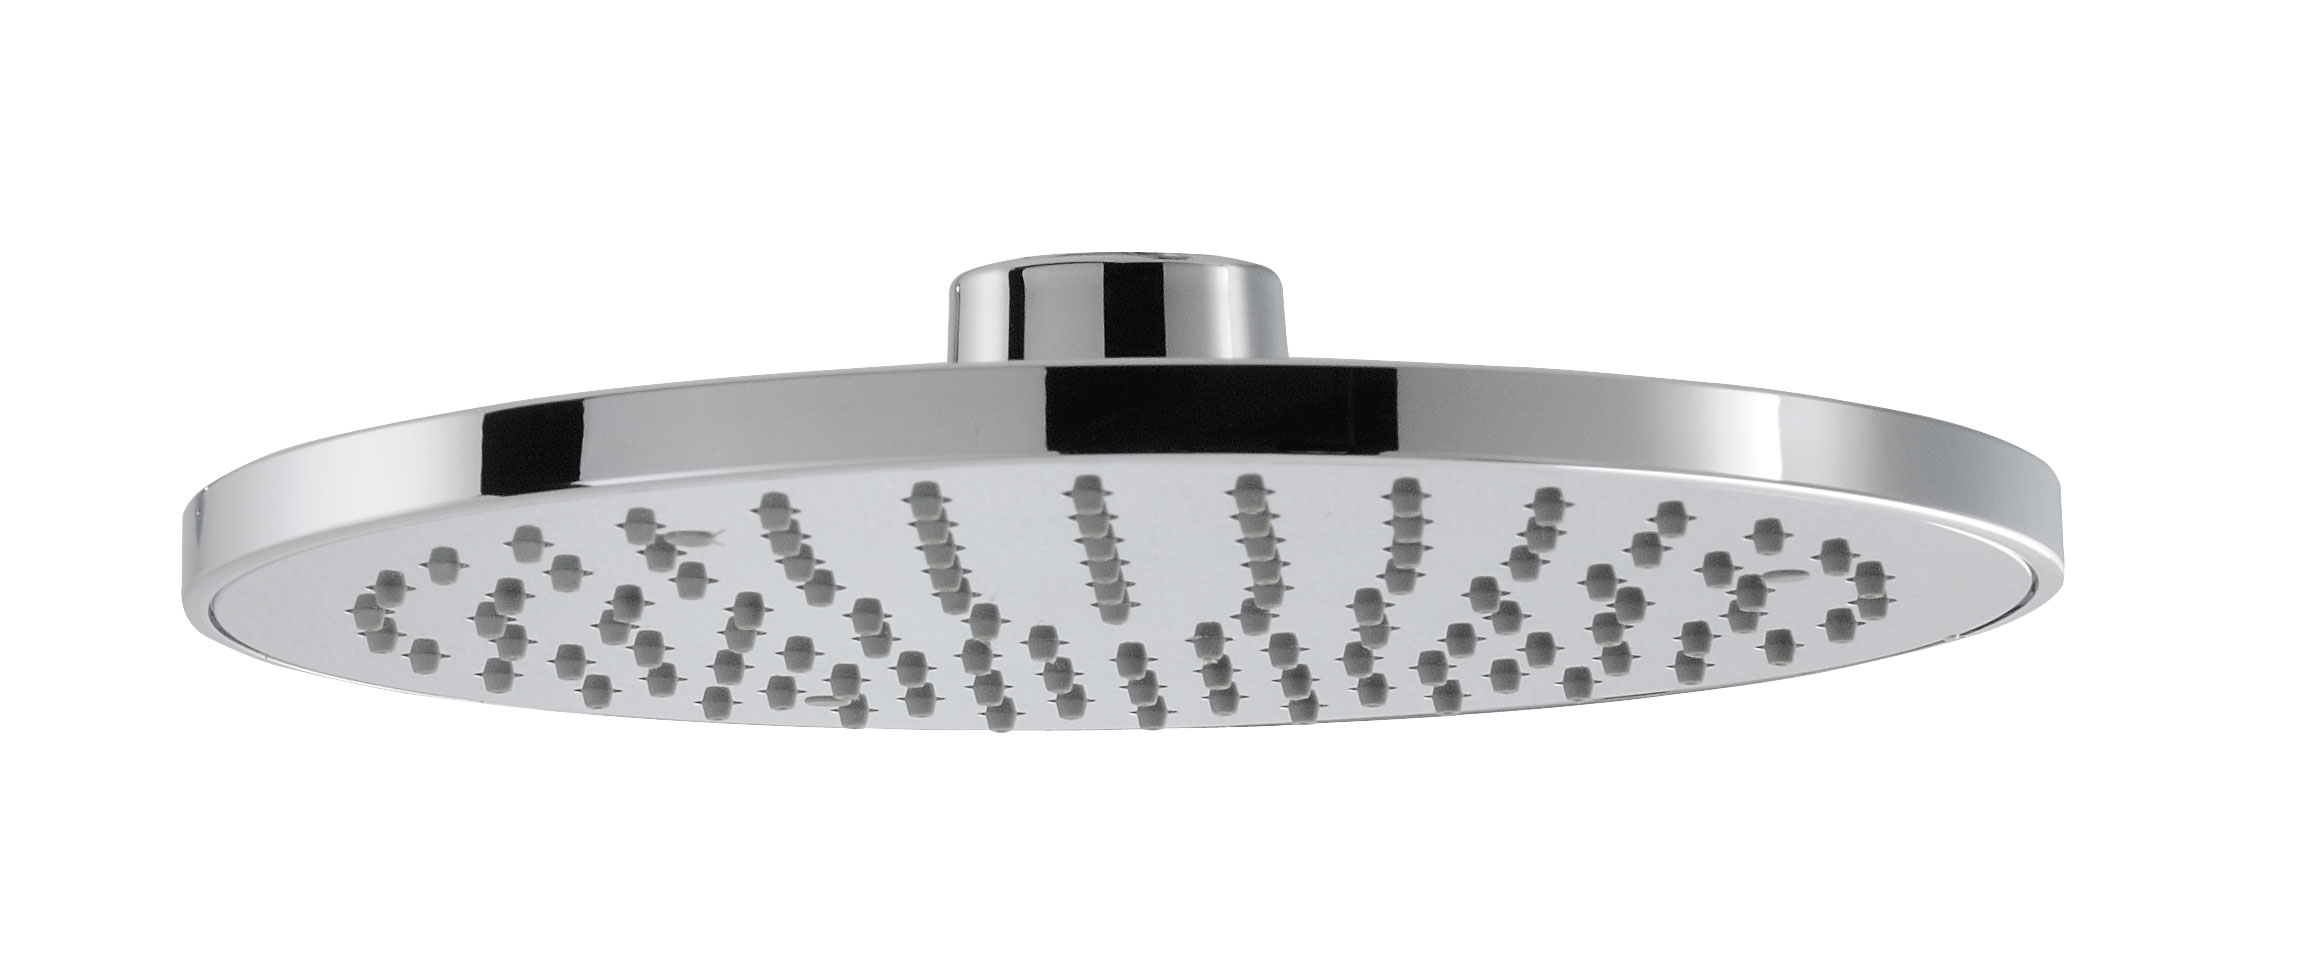 click on ABS Circular Showerhead image to enlarge